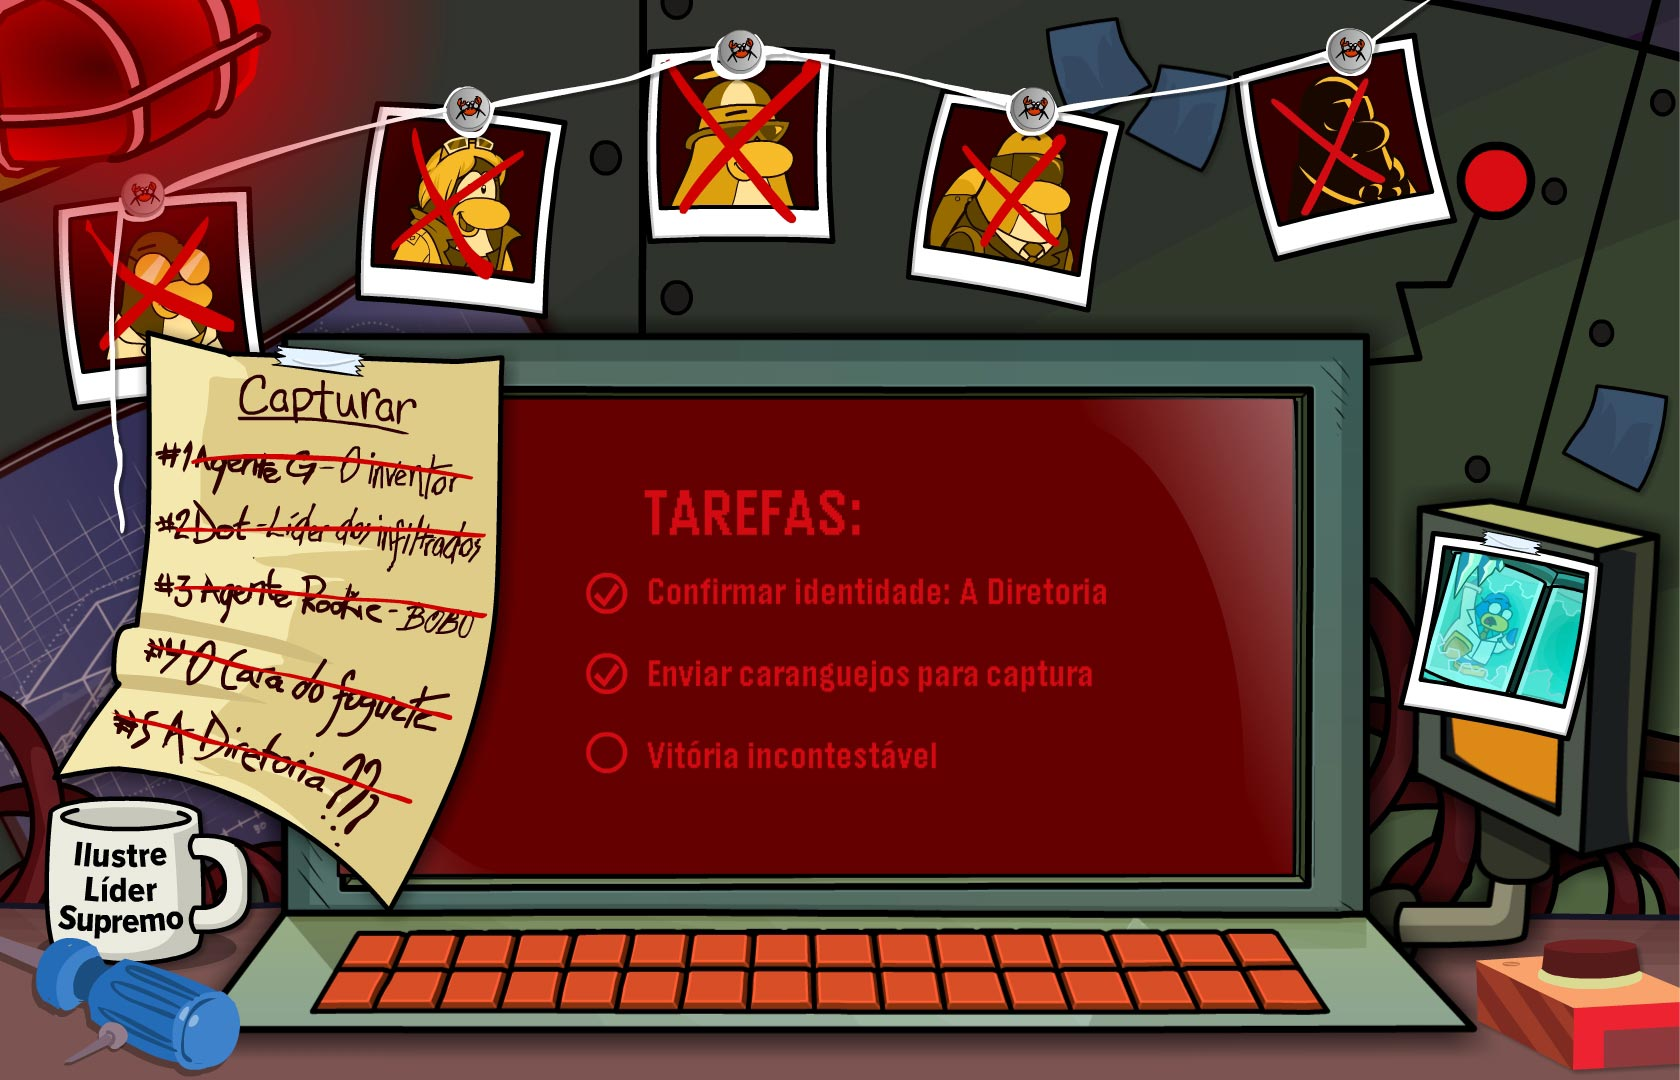 http://pt.clubpenguinwiki.info/static/images/cpwpt/8/8d/Opera%C3%A7%C3%A3oApag%C3%A3oCH7.jpg